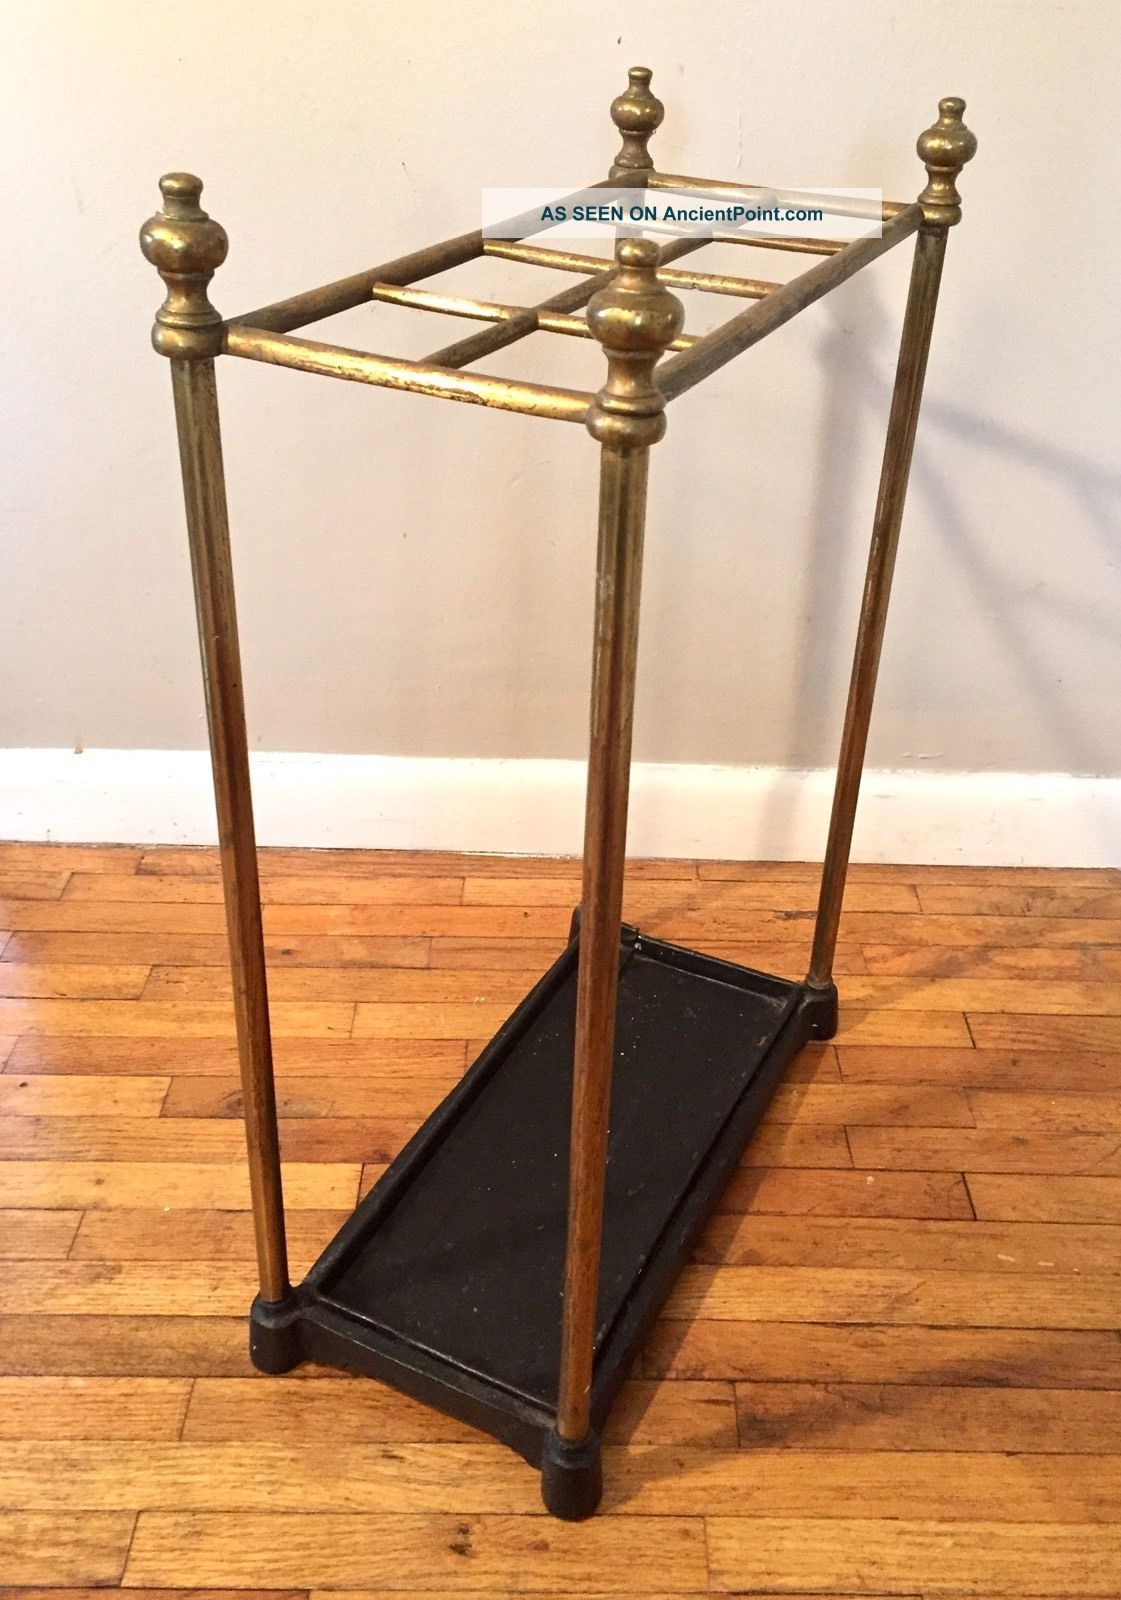 Antique Vtg Brass Umbrella Cane Stand Holder Cast Iron Base Hollywood Regency 1900-1950 photo